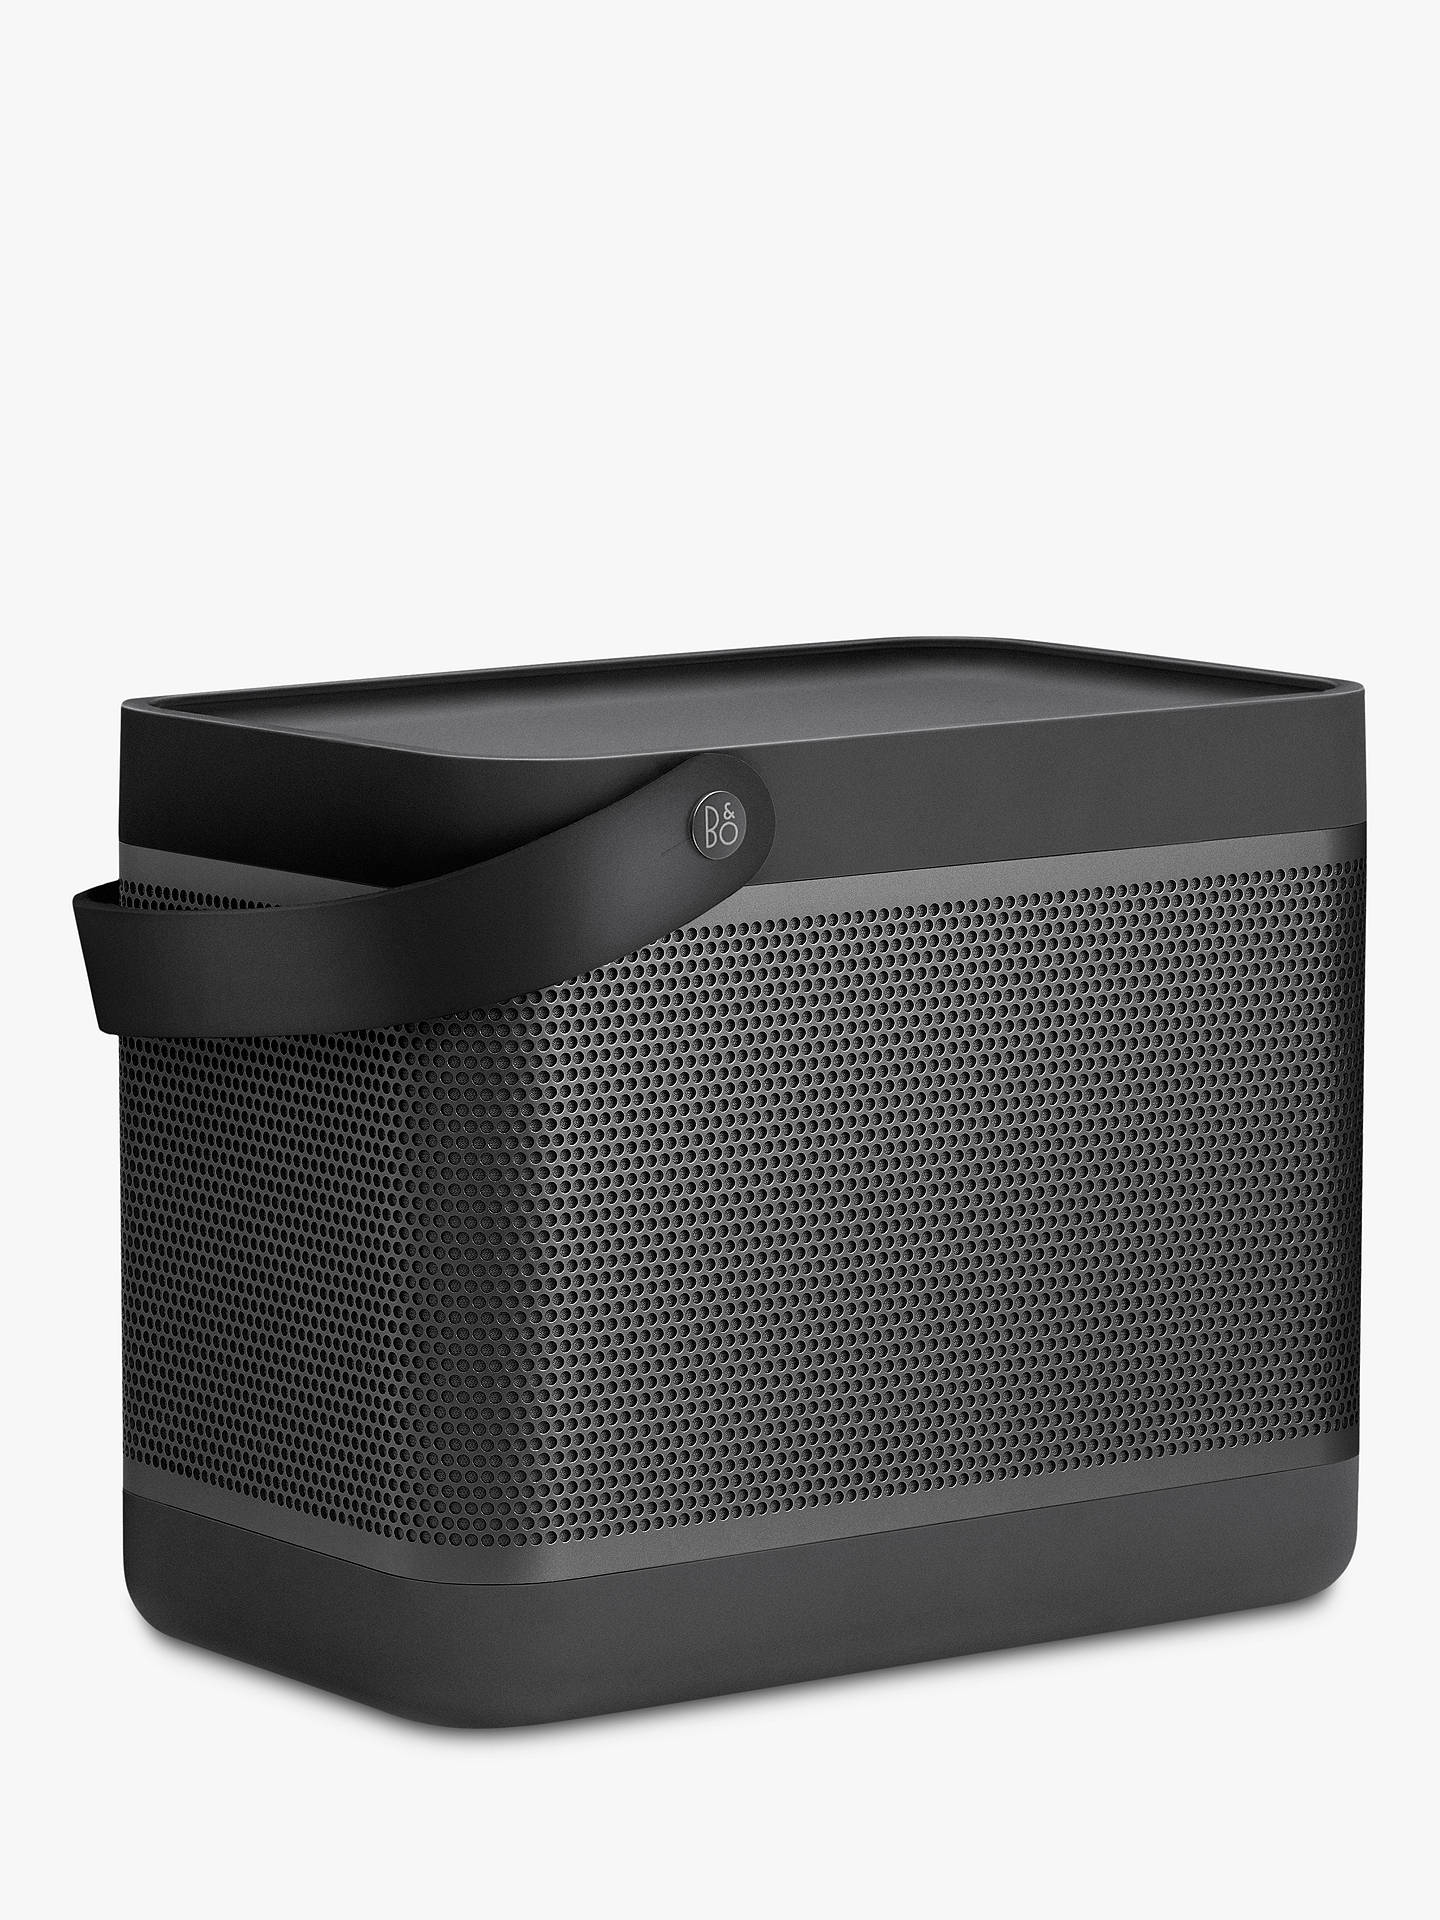 BuyB&O PLAY by Bang & Olufsen Beolit17 Portable Bluetooth Speaker, Stone Grey Online at johnlewis.com